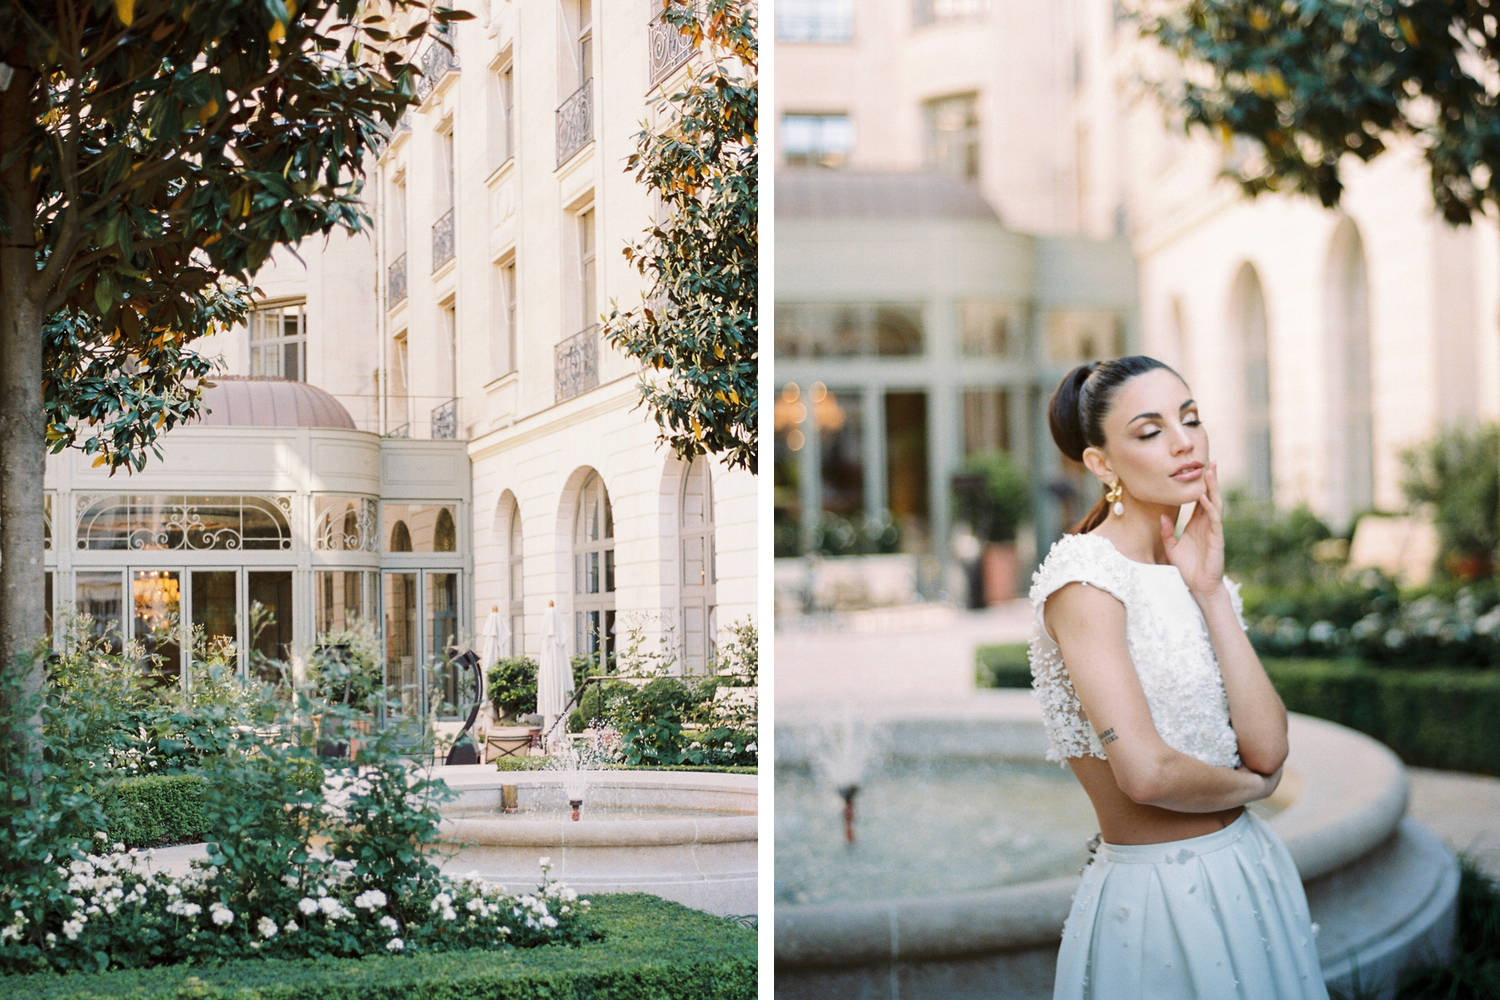 ritz paris wedding anma koy